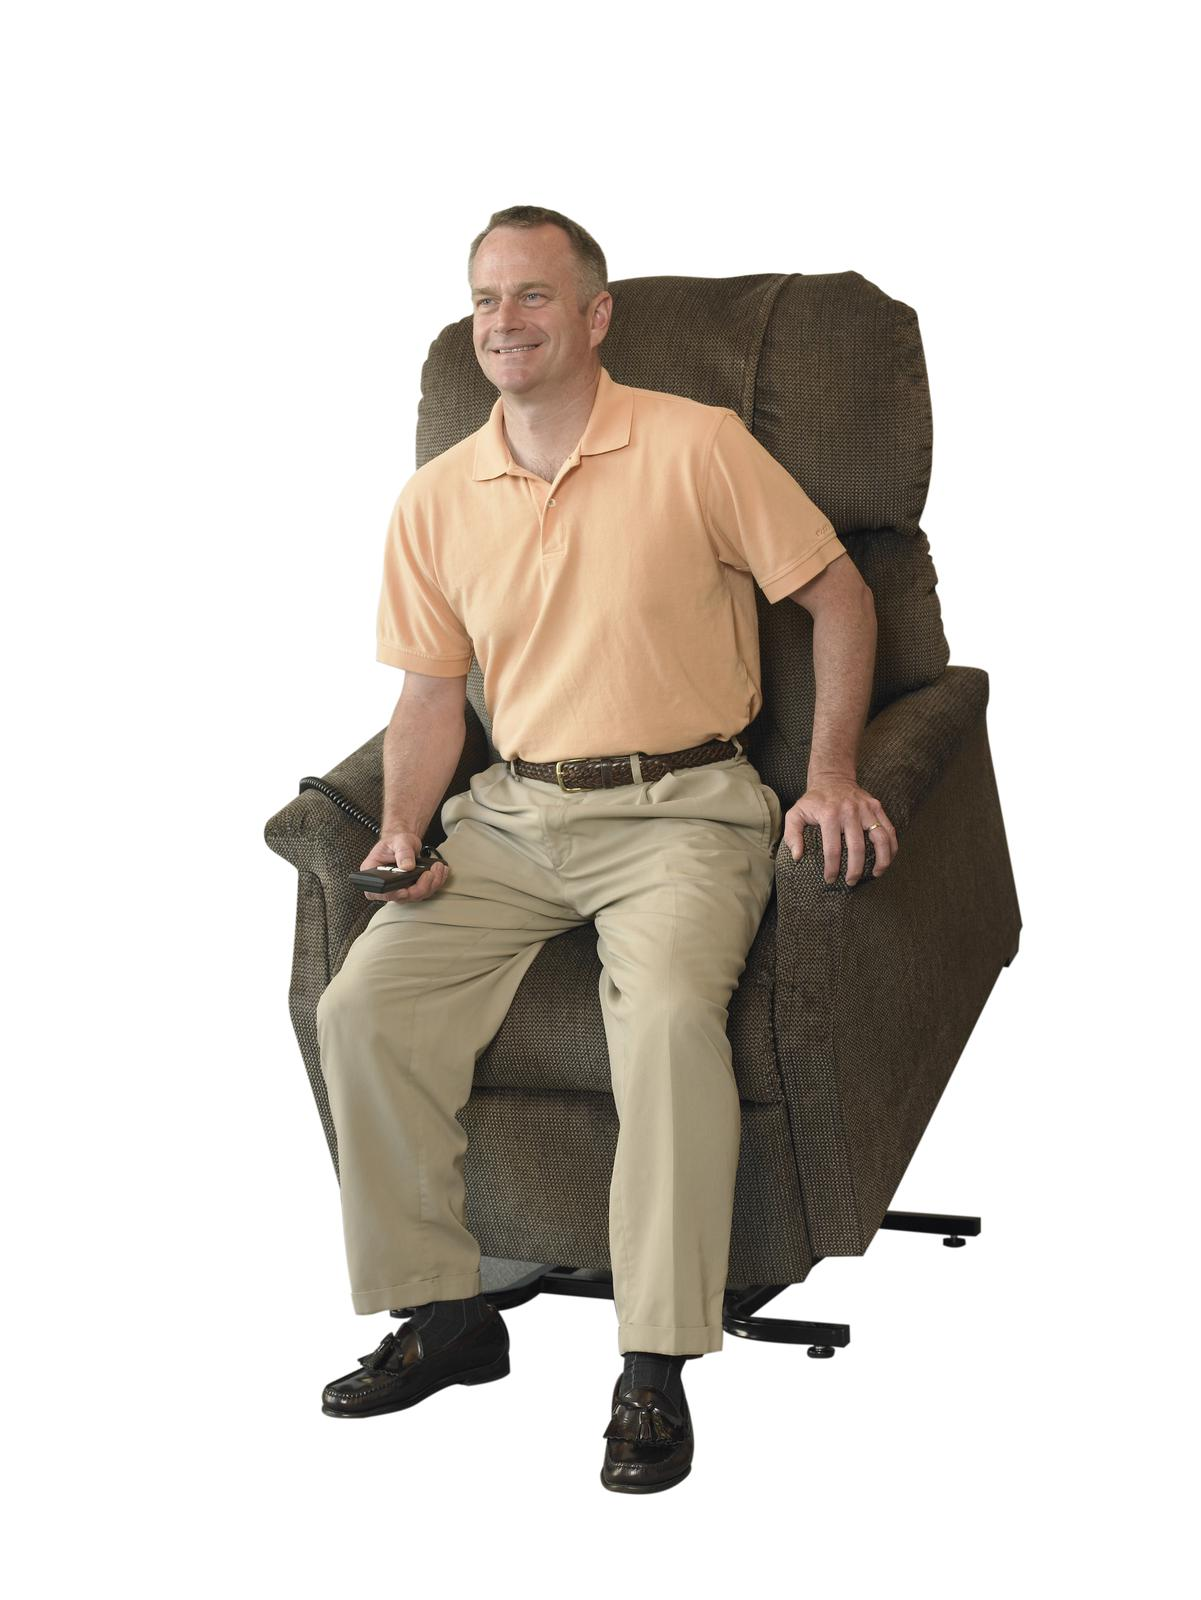 Seat Lift Chair Rental Avenue Medical Dover DE 800 541 8119